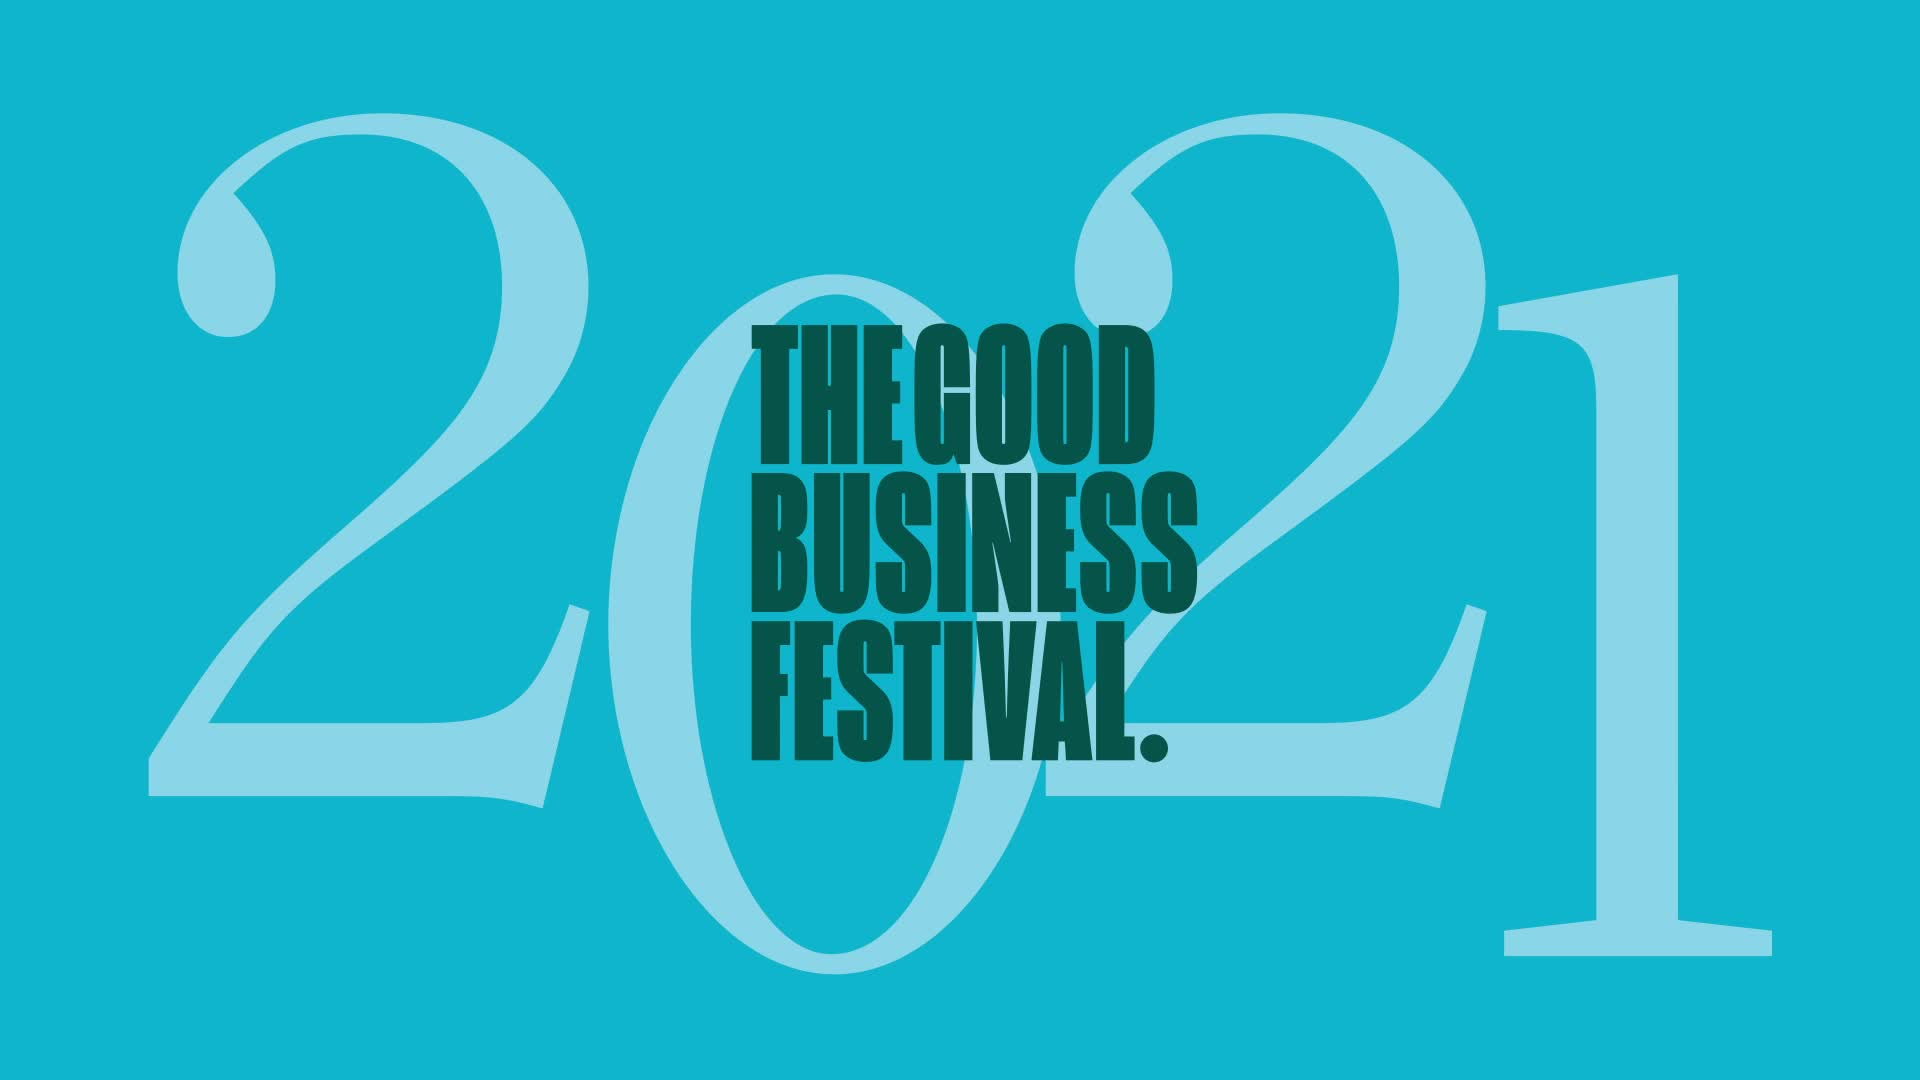 , Upcoming Events: B Corp Global Climate Summit & The Good Business Festival